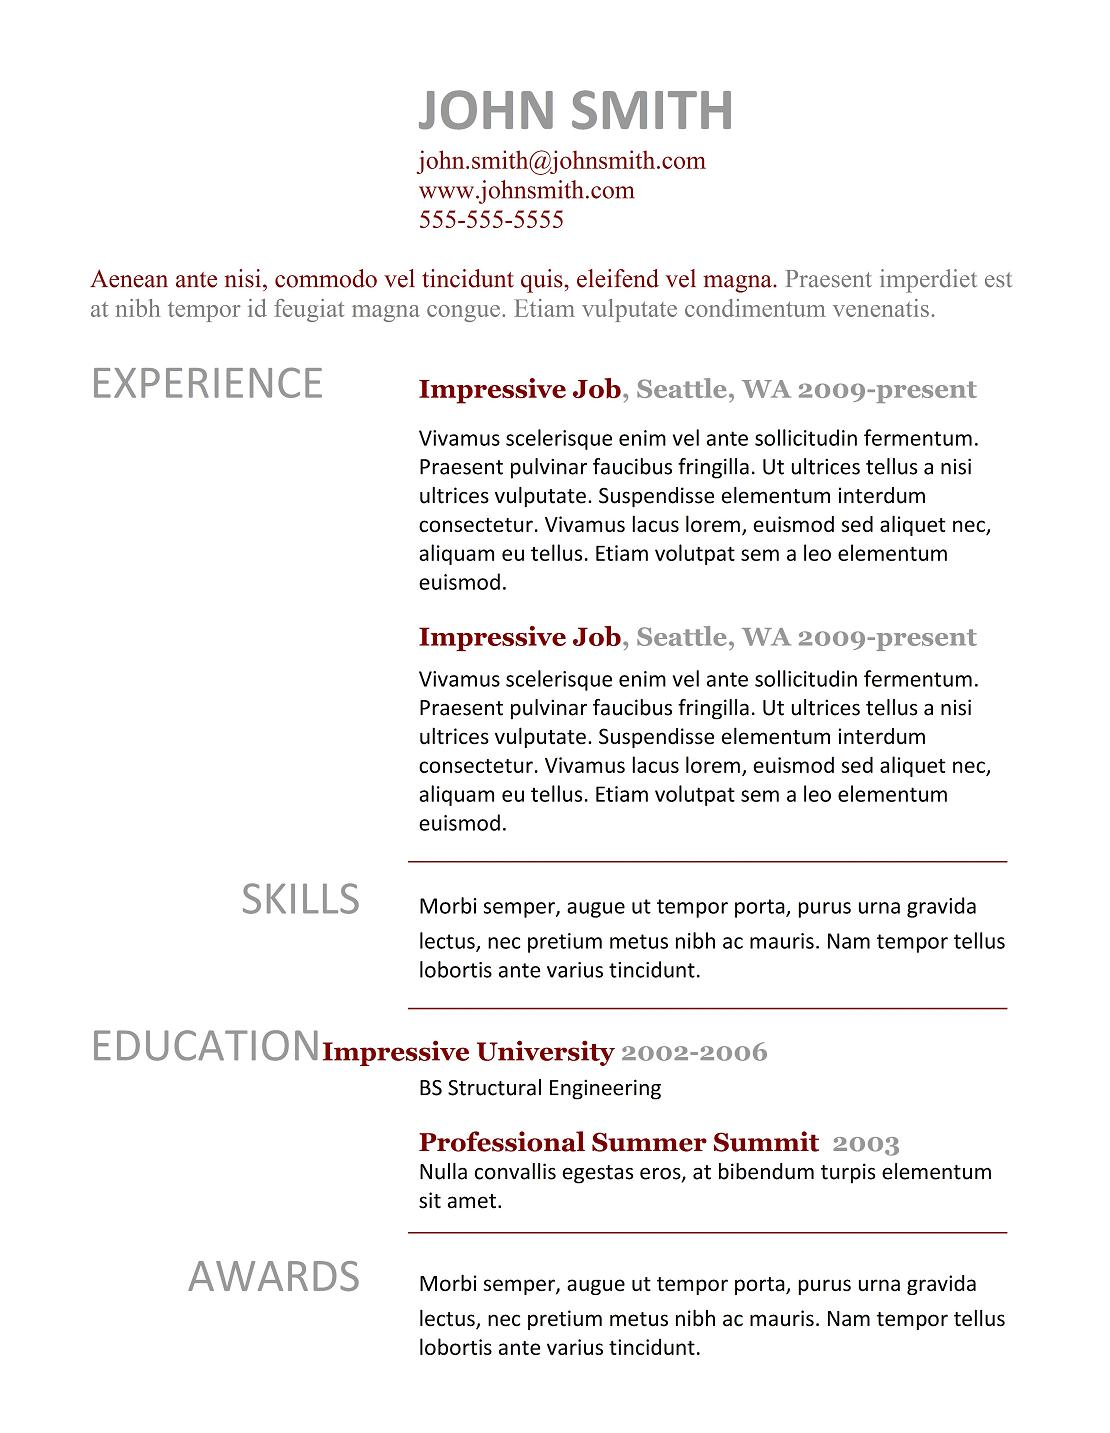 9 Best Free Resume Templates Download For Freshers  Resume Templates Free Download Doc